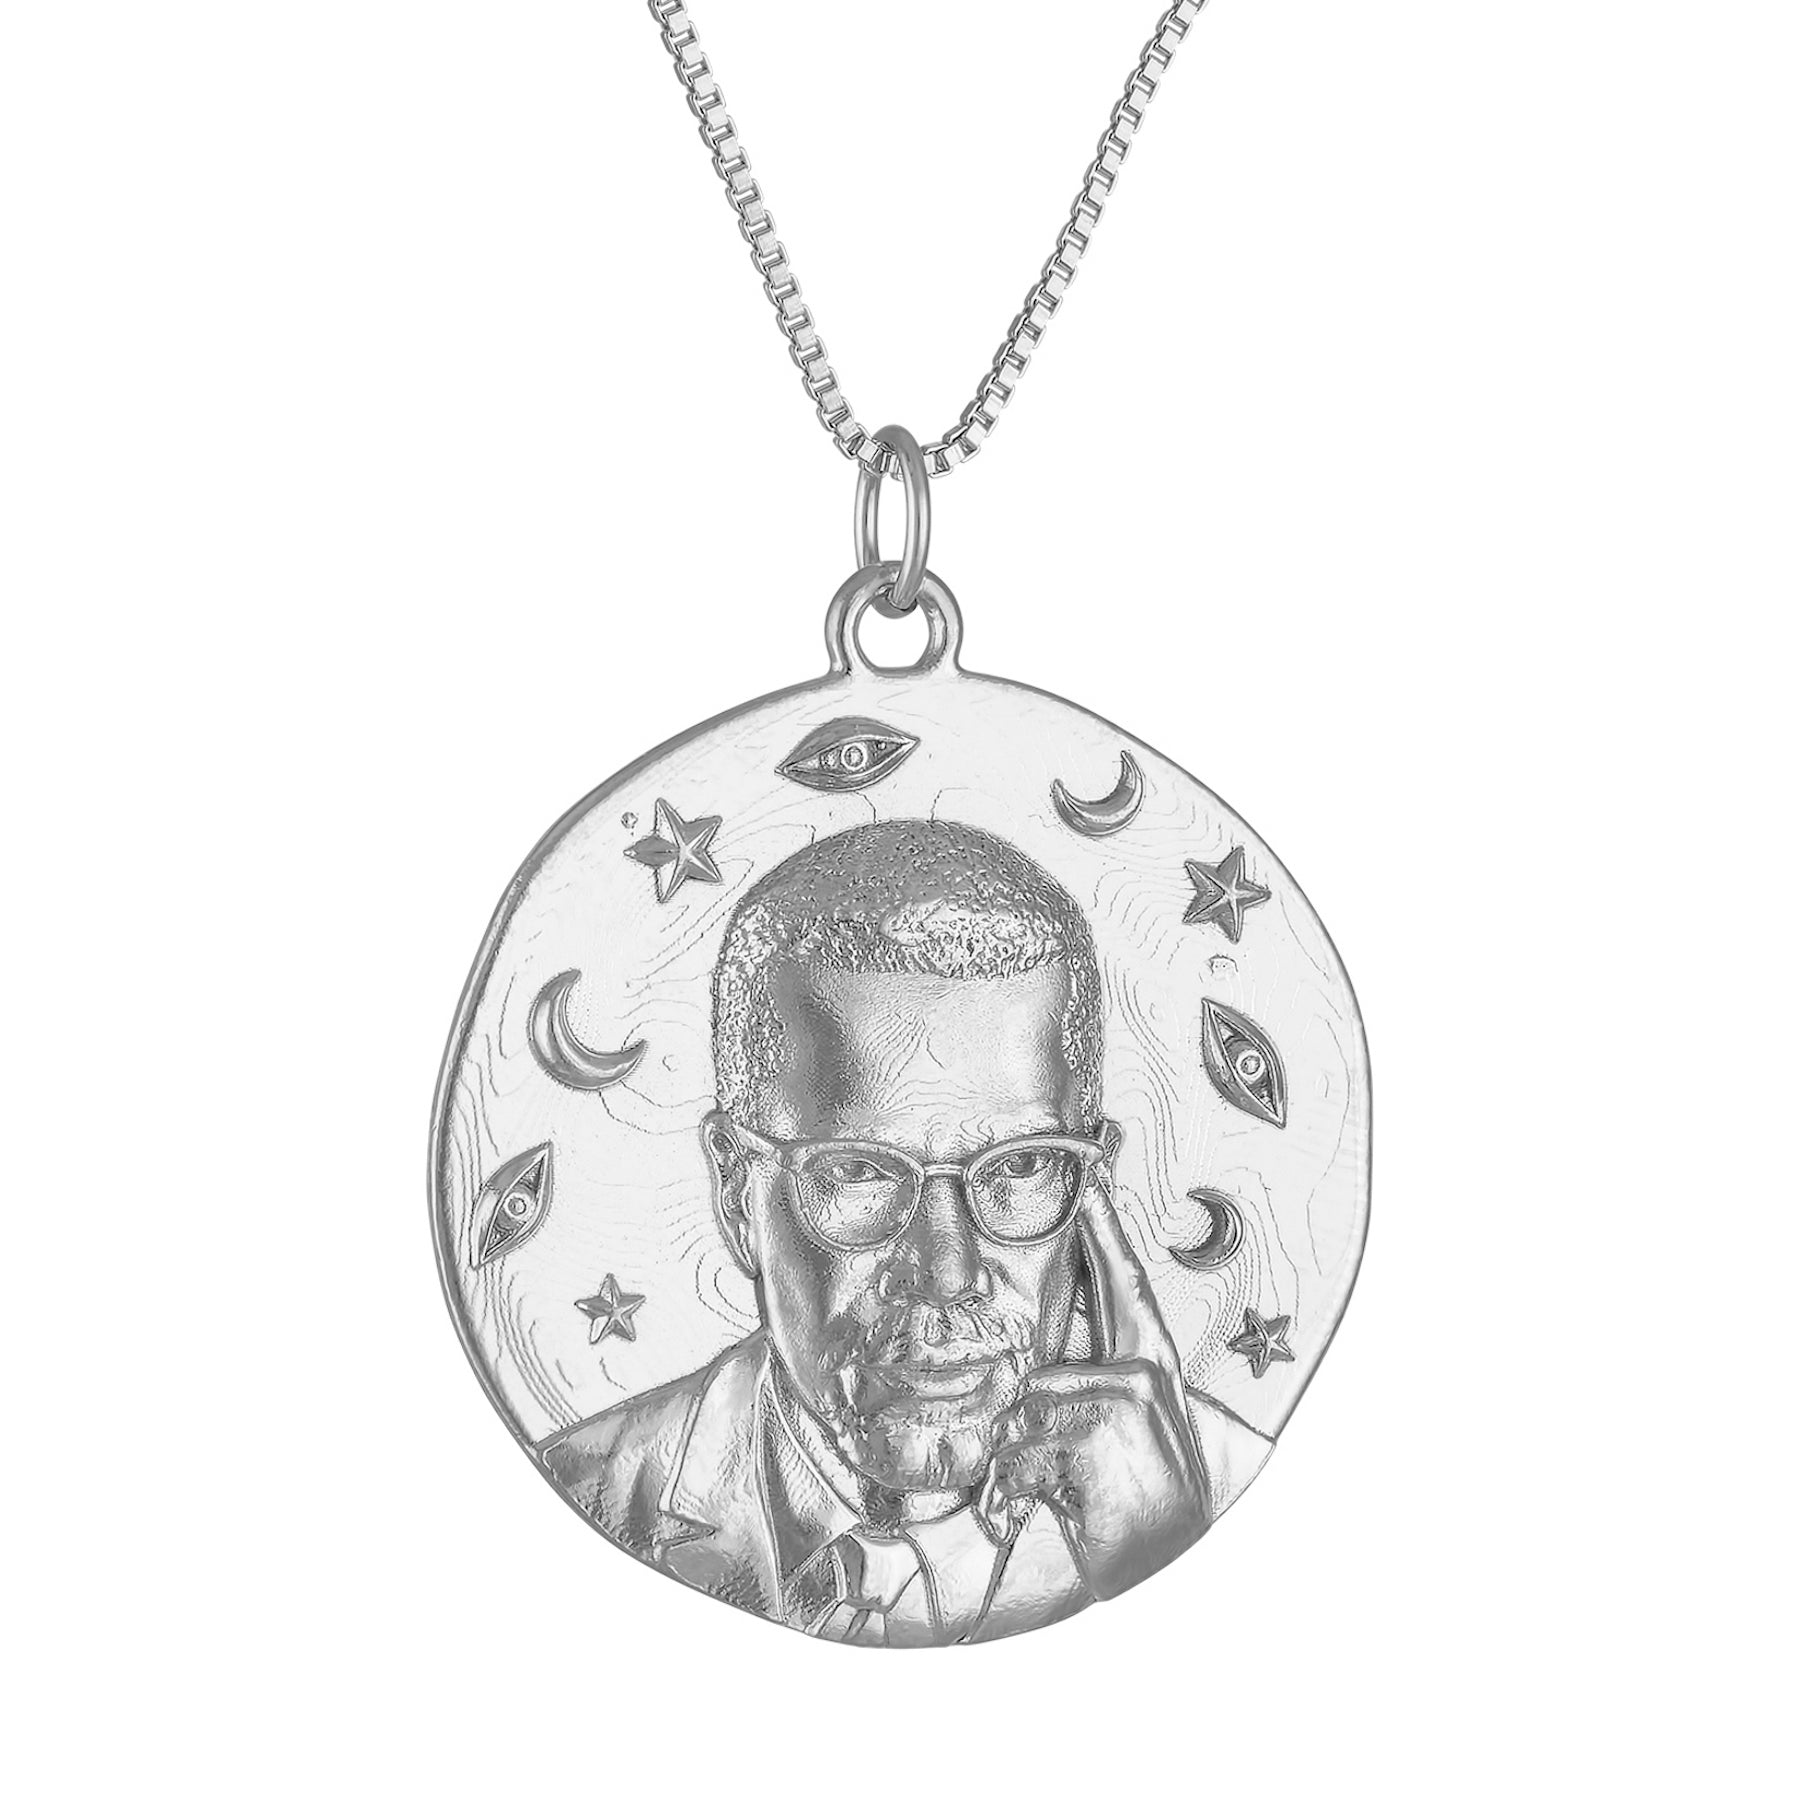 Malcolm X Round Medallion Necklace